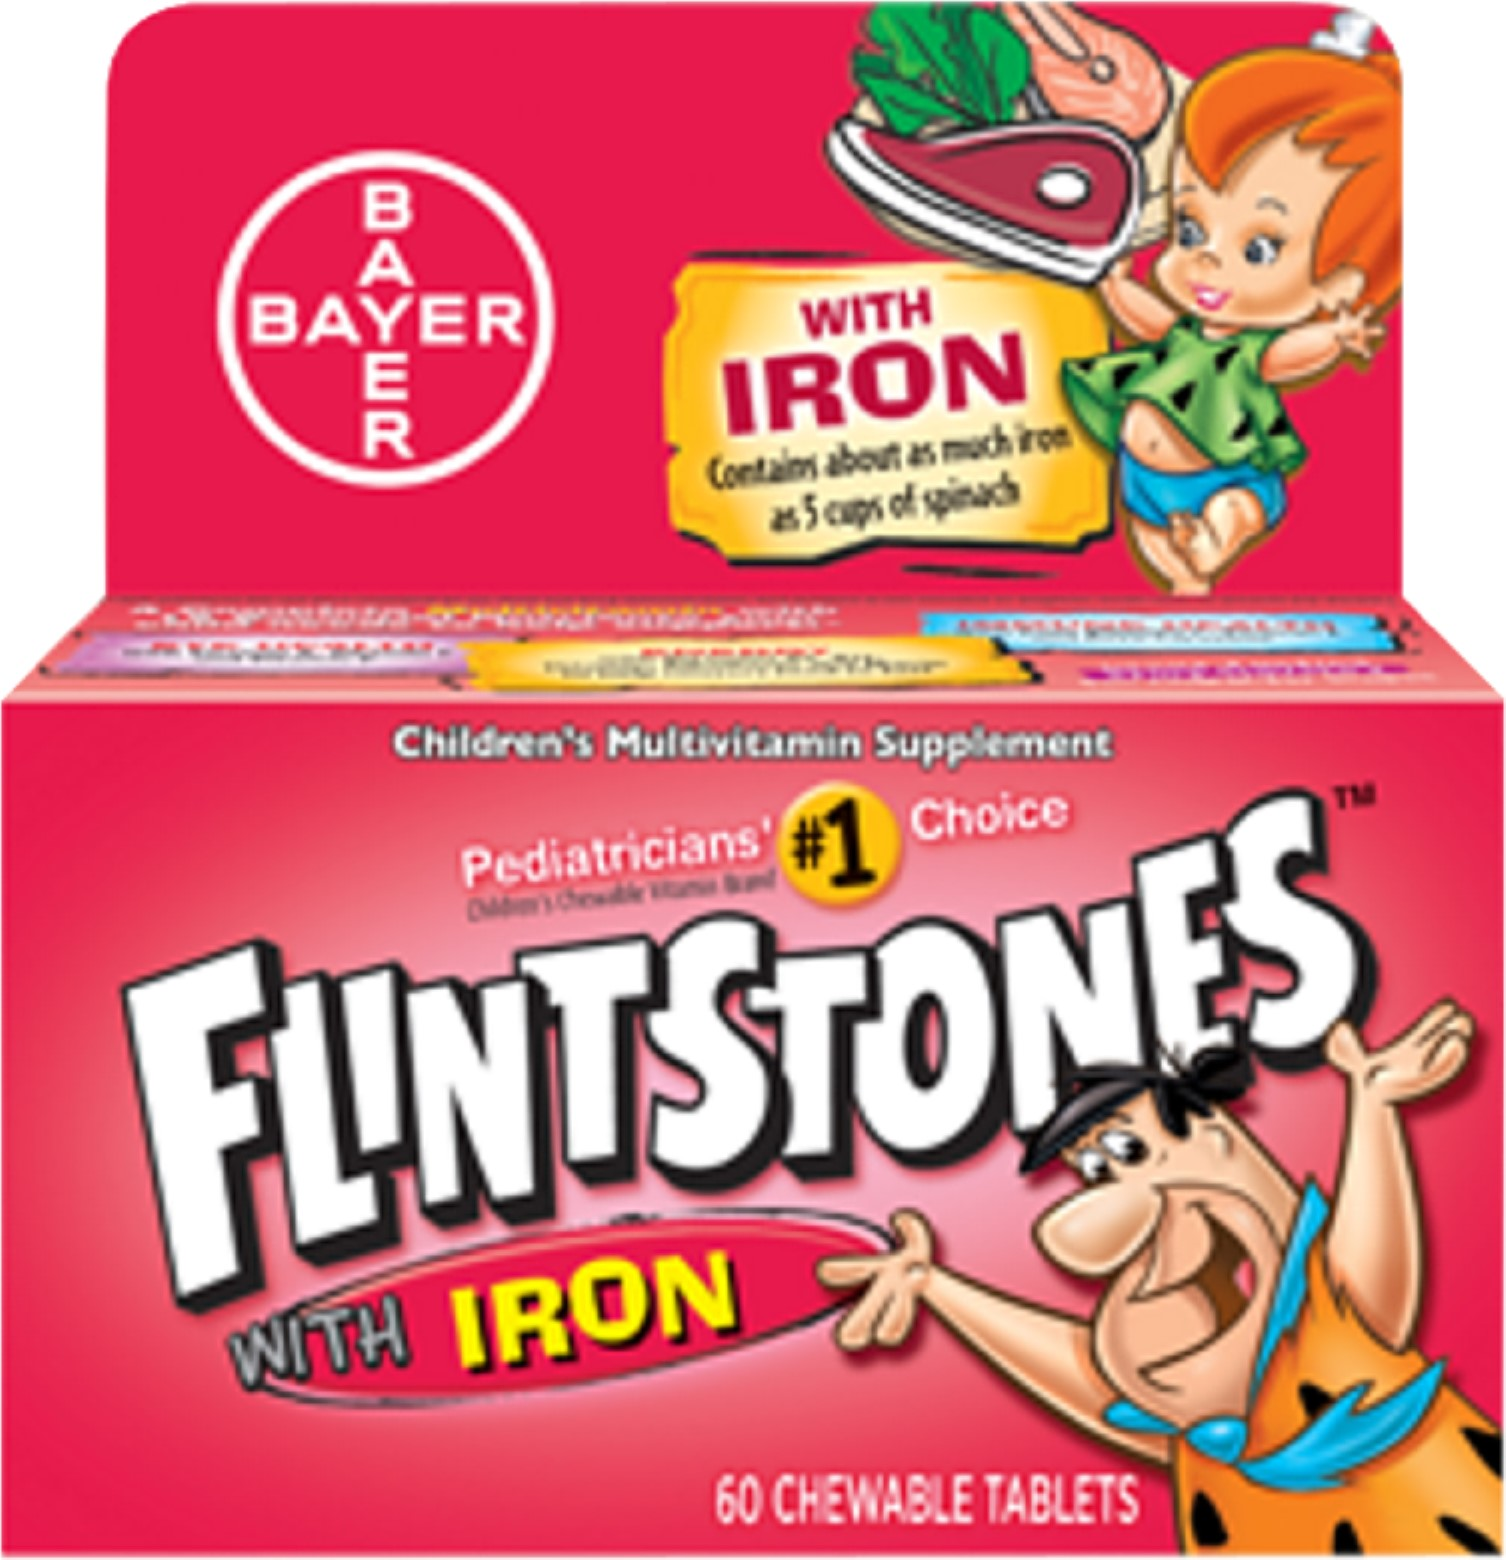 Flintstones Chewable Tablets With Iron 60 Tablets (Pack of 2)